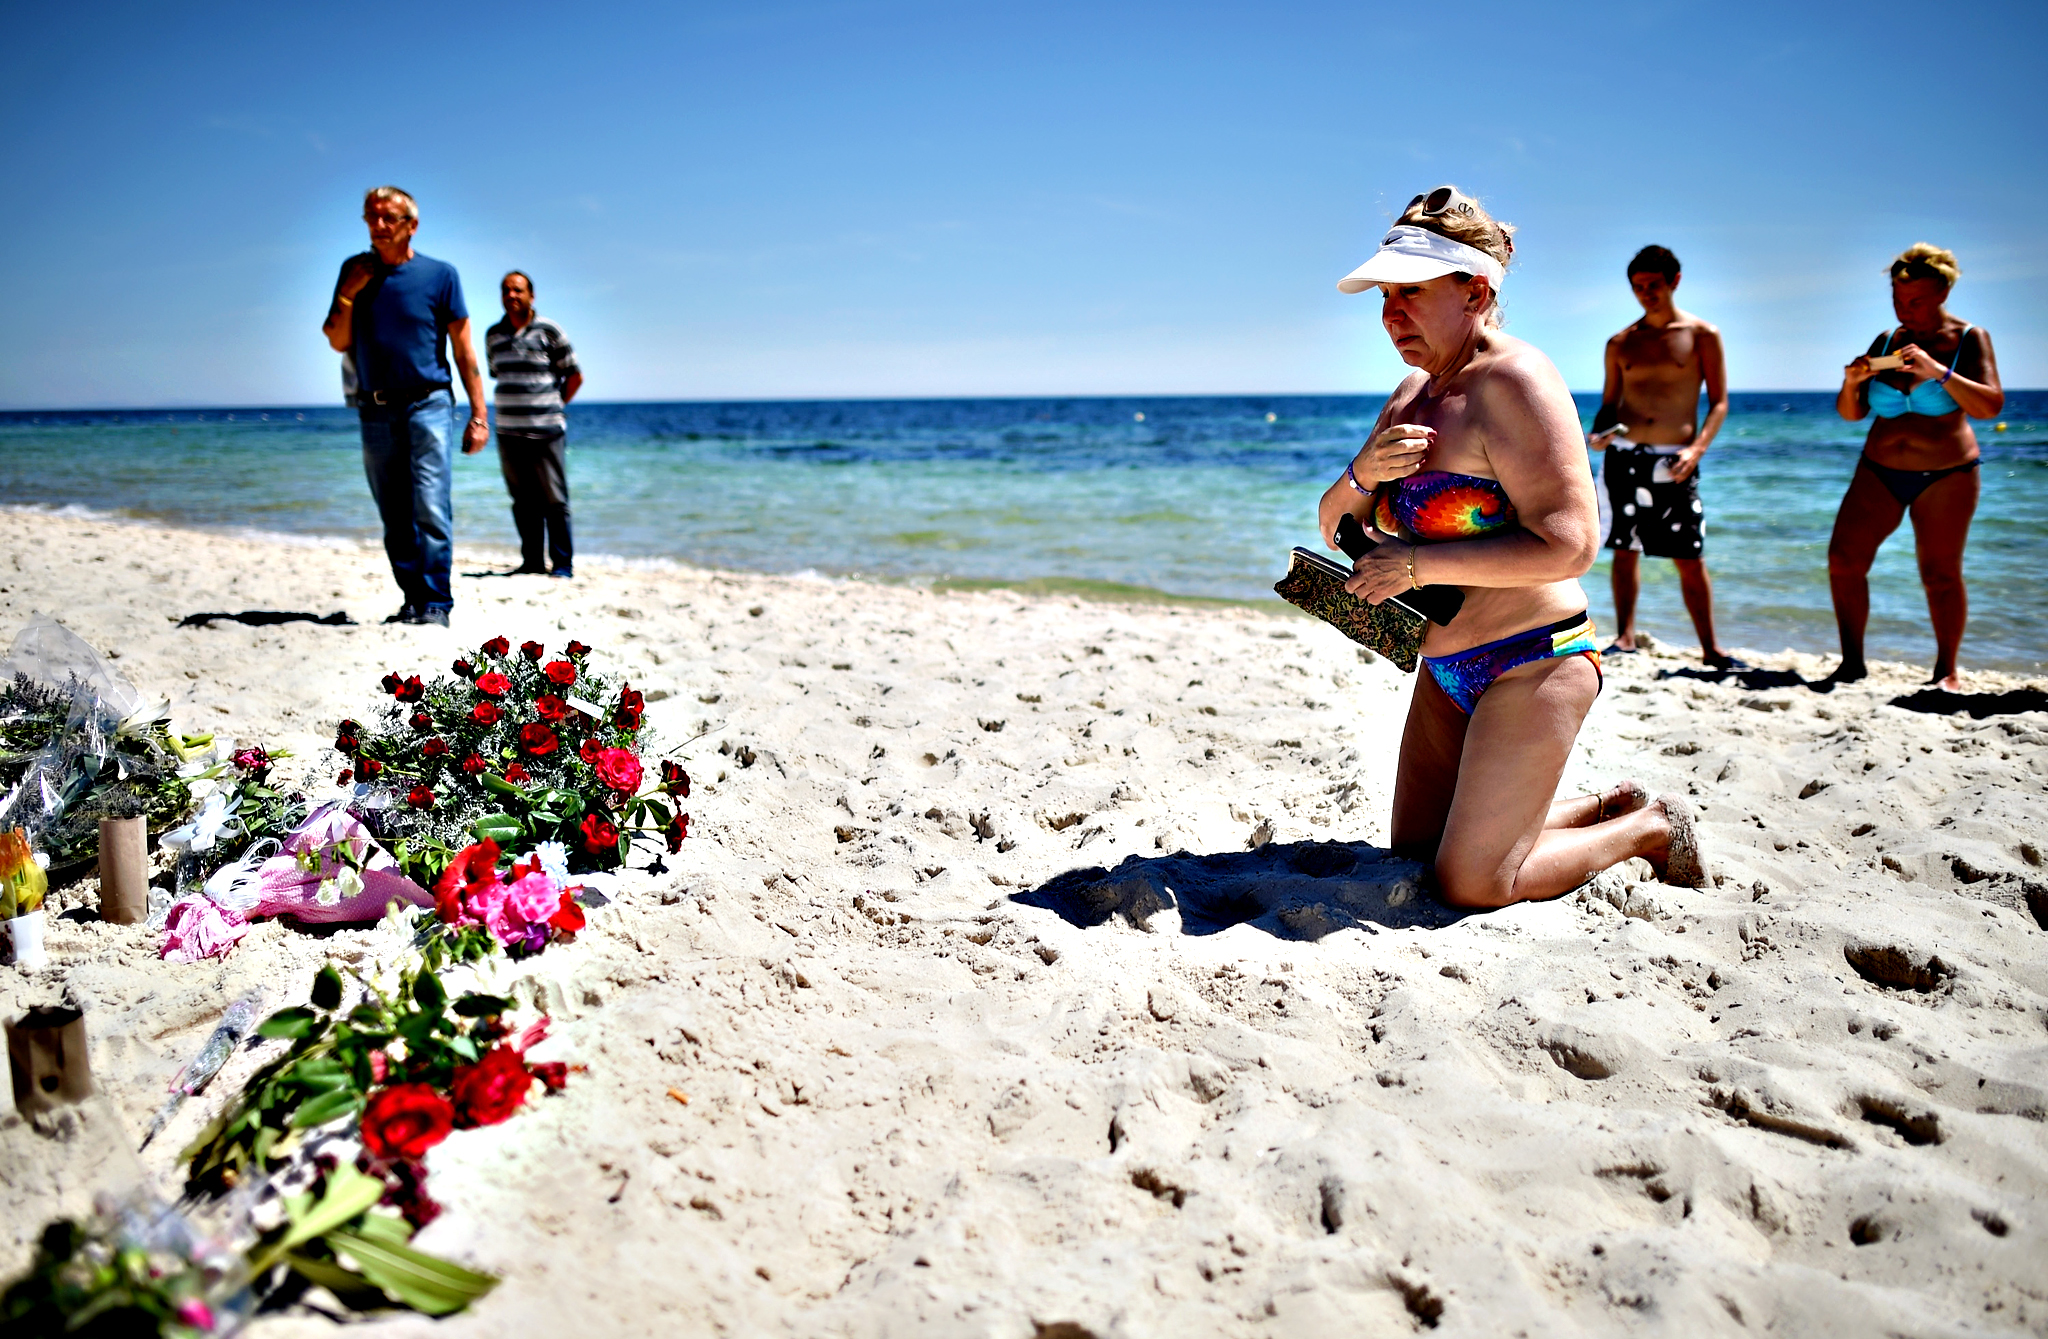 Holidaymakers react as people lay flowers on Marhaba beach, where 38 people were killed in a terrorist attack last Friday, on June 30, 2015 in Sousse, Tunisia. British police have been deployed to the area as part of one of the biggest counter terror operations since the London bombings on July 7, 2005